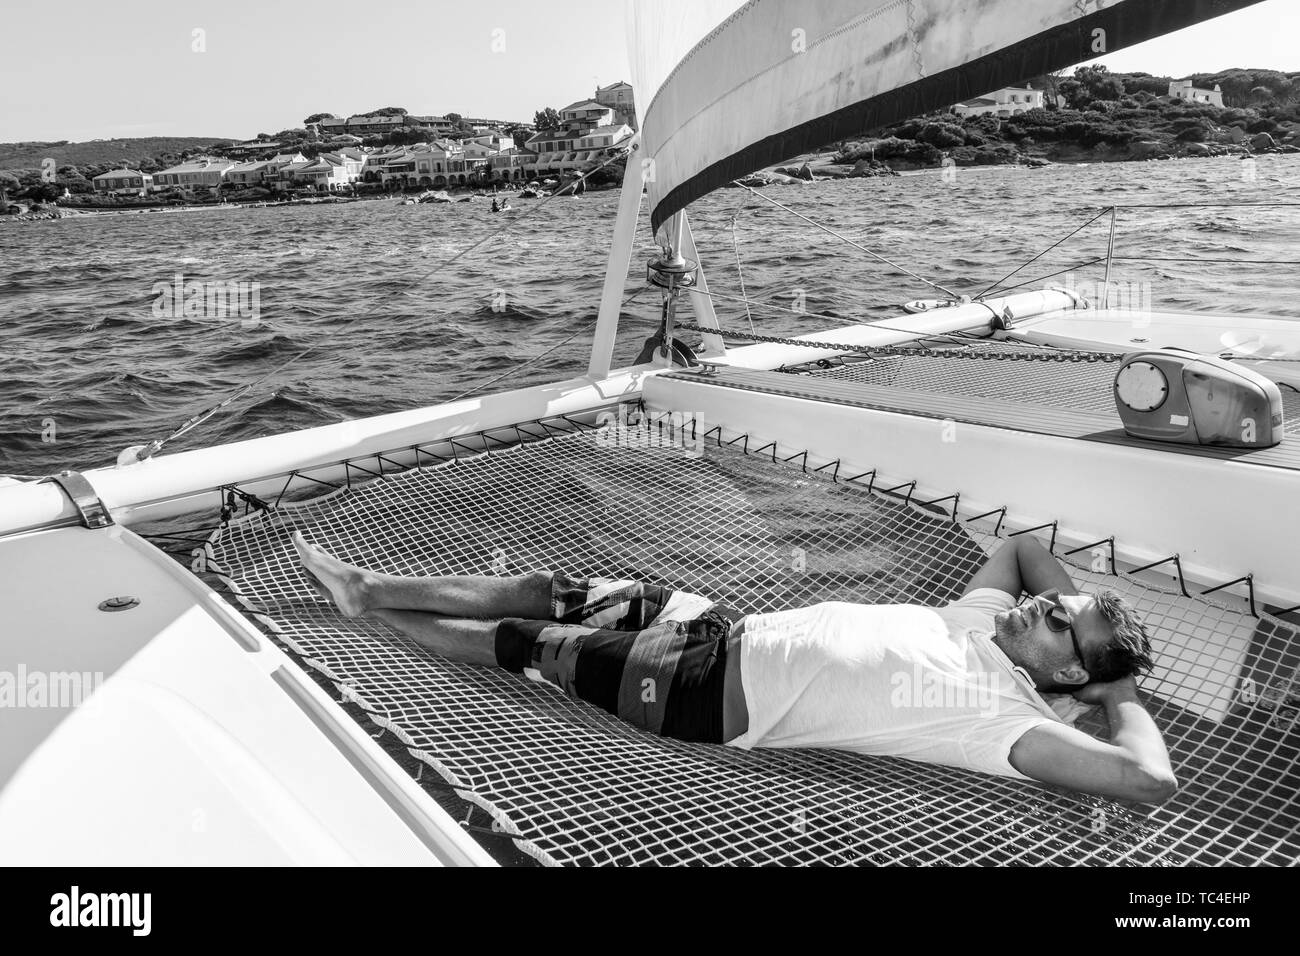 Sporty man relaxing, lying in hammock of a catamaran sailing boat on luxury nautic vacations near picture perfect Palau town, Sardinia, Italy. Black a - Stock Image